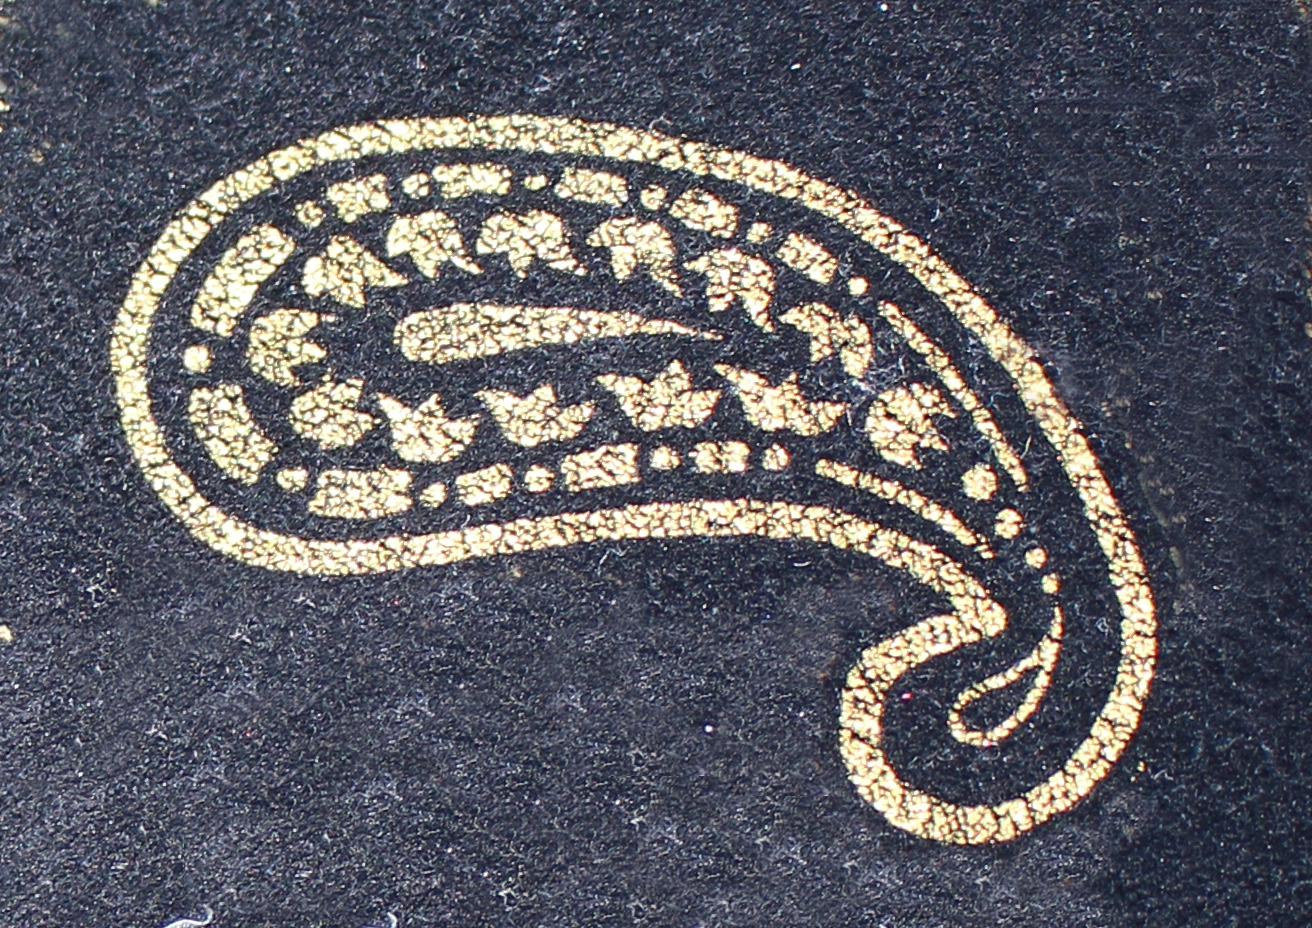 A single element from my Jake paisley velvet jacket. It is a gold teardrop-shaped motif on black. The small end is curved in on itself, bent down and to the left.